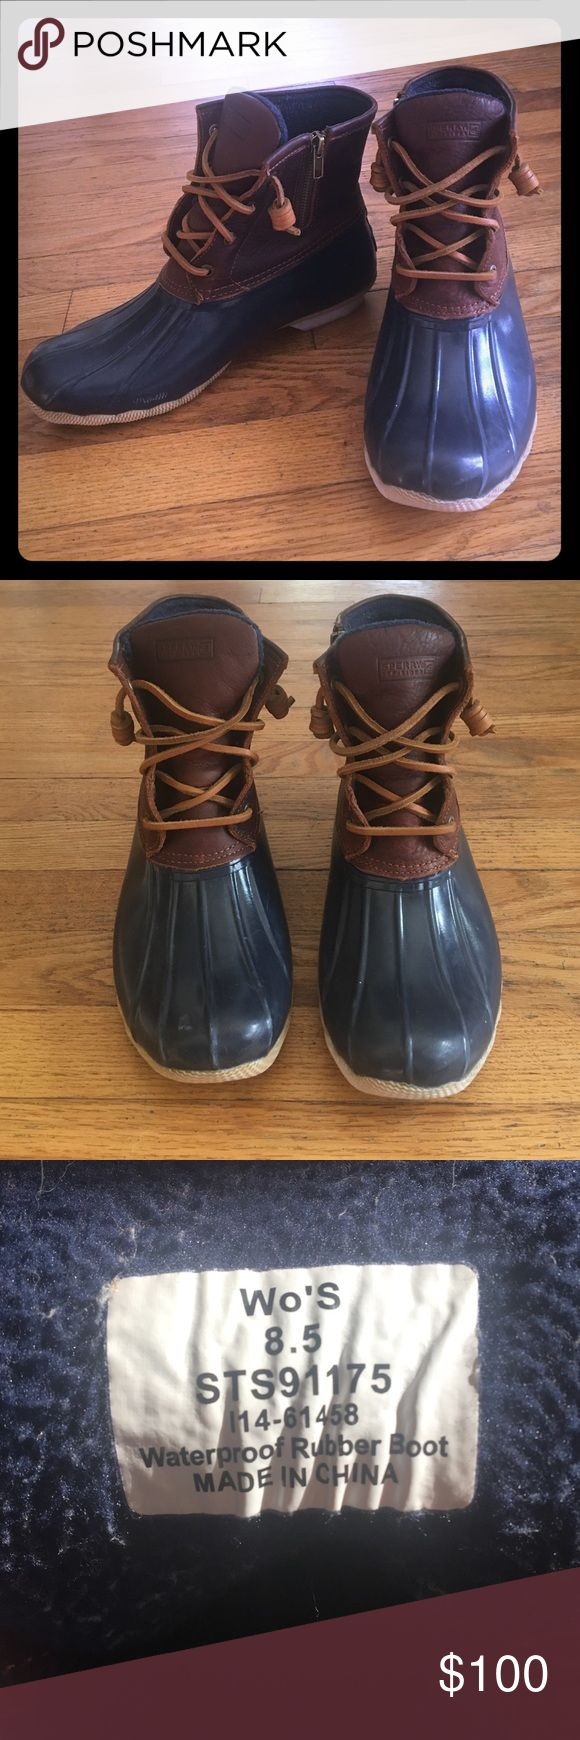 "Sperry ""duck"" boots Like new Sperry duck boots! Women's size 8.5. Few signs of wear!! Only been worn once! I'm only selling them because they were too big for me and I already got a new pair. Open to offers but no trades please! Sperry Top-Sider Shoes Winter & Rain Boots"